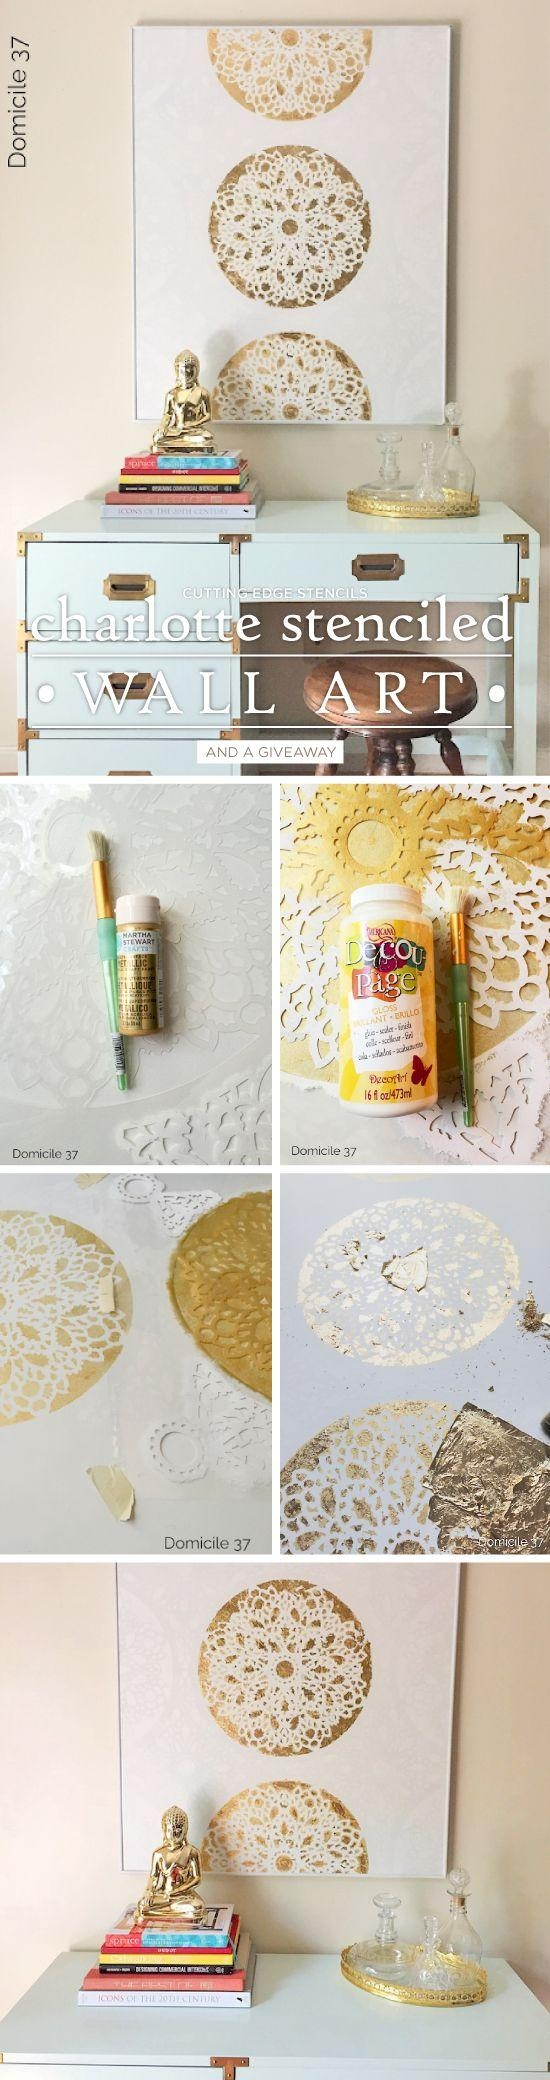 Best 25+ Diy Wall Decor Ideas On Pinterest | Diy Wall Art, Wall With Regard To Pinterest Wall Art Decor (Image 5 of 20)